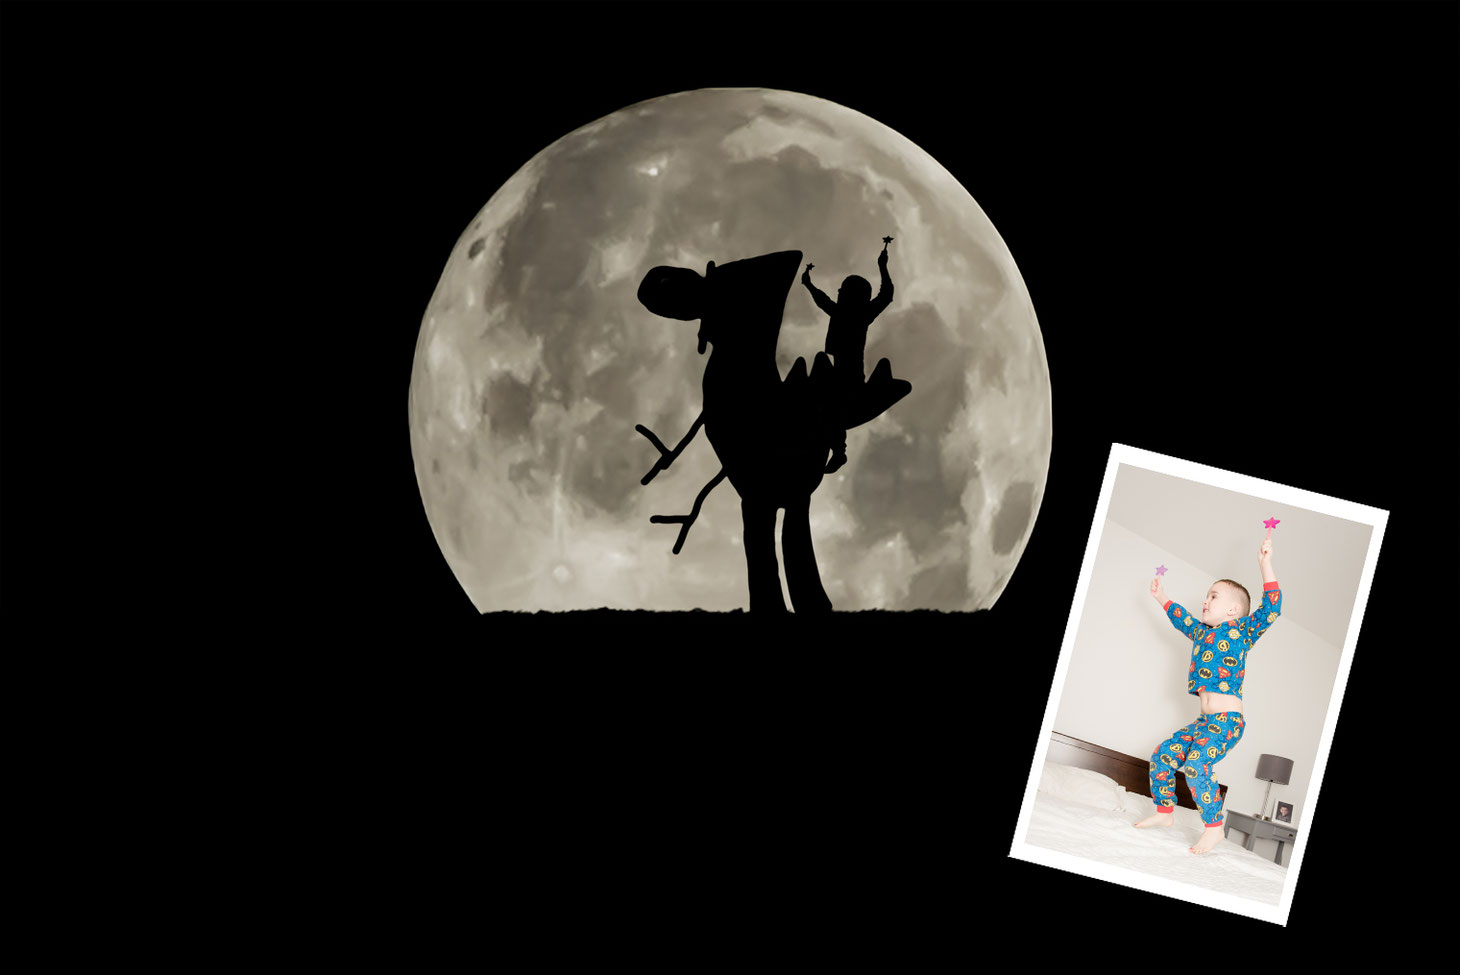 Photo of child riding a child's drawing of a dinosaur in silhouette in front of a large moon. Imposed on the photo is the original photo of the child not in silhouette. Child is wearing blue pyjamas with superhero logos. He is jumping on a bed.